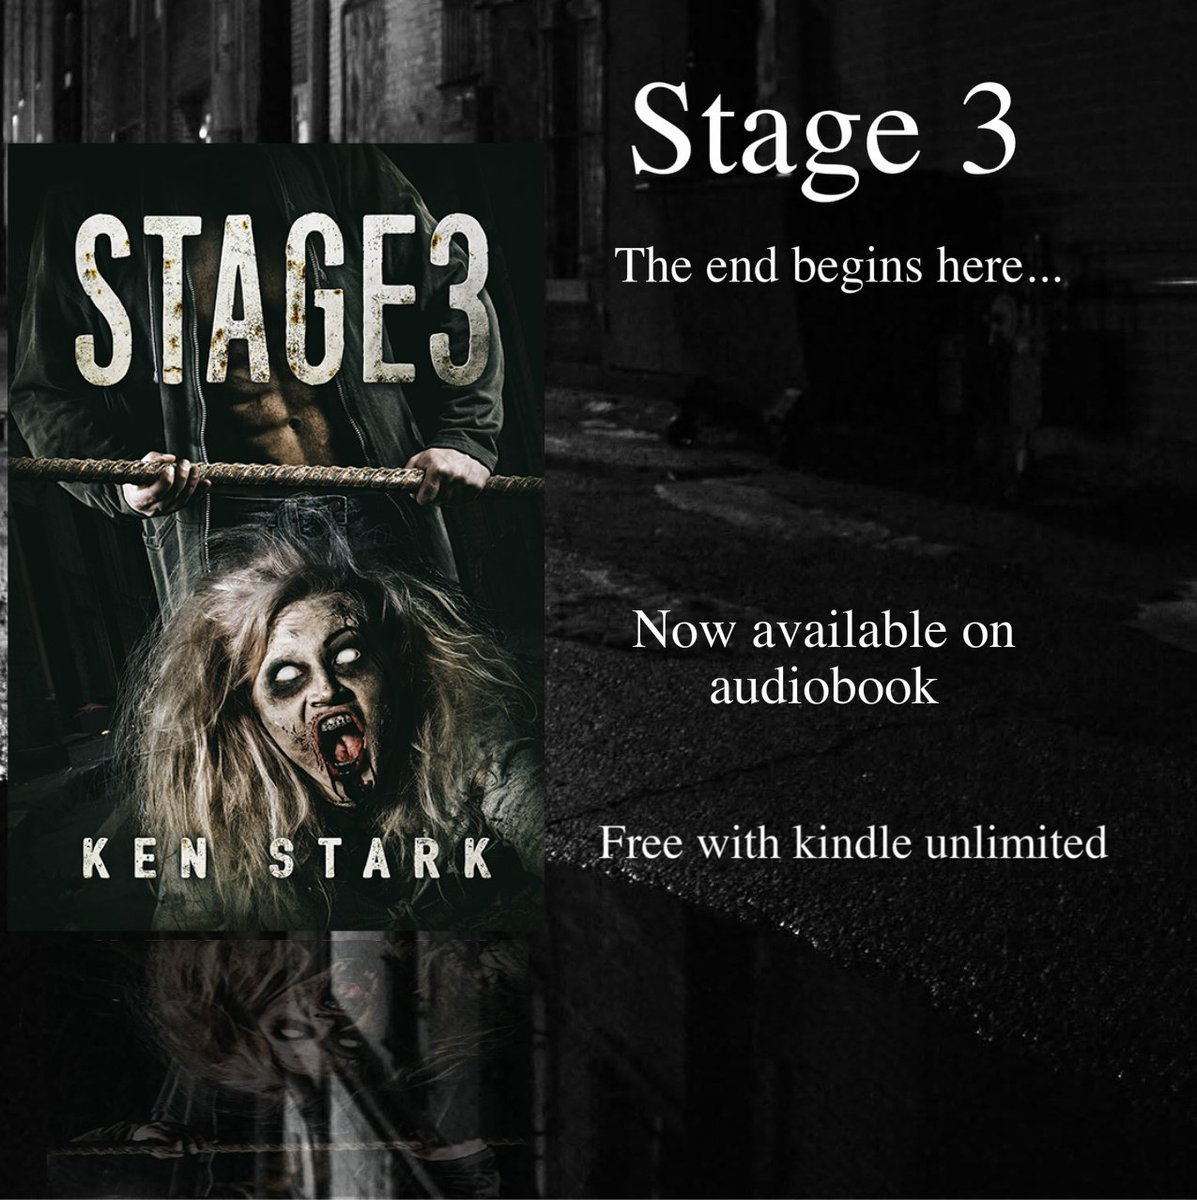 They huddled together in the dark, listening to the city tear itself apart. #horror #thriller #zombie #apocalypse  https://www. amazon.com/Stage-Apocalyp tic-Thriller-Ken-Stark-ebook/dp/B01CYITYOS &nbsp; … <br>http://pic.twitter.com/T5FVP9RWxI